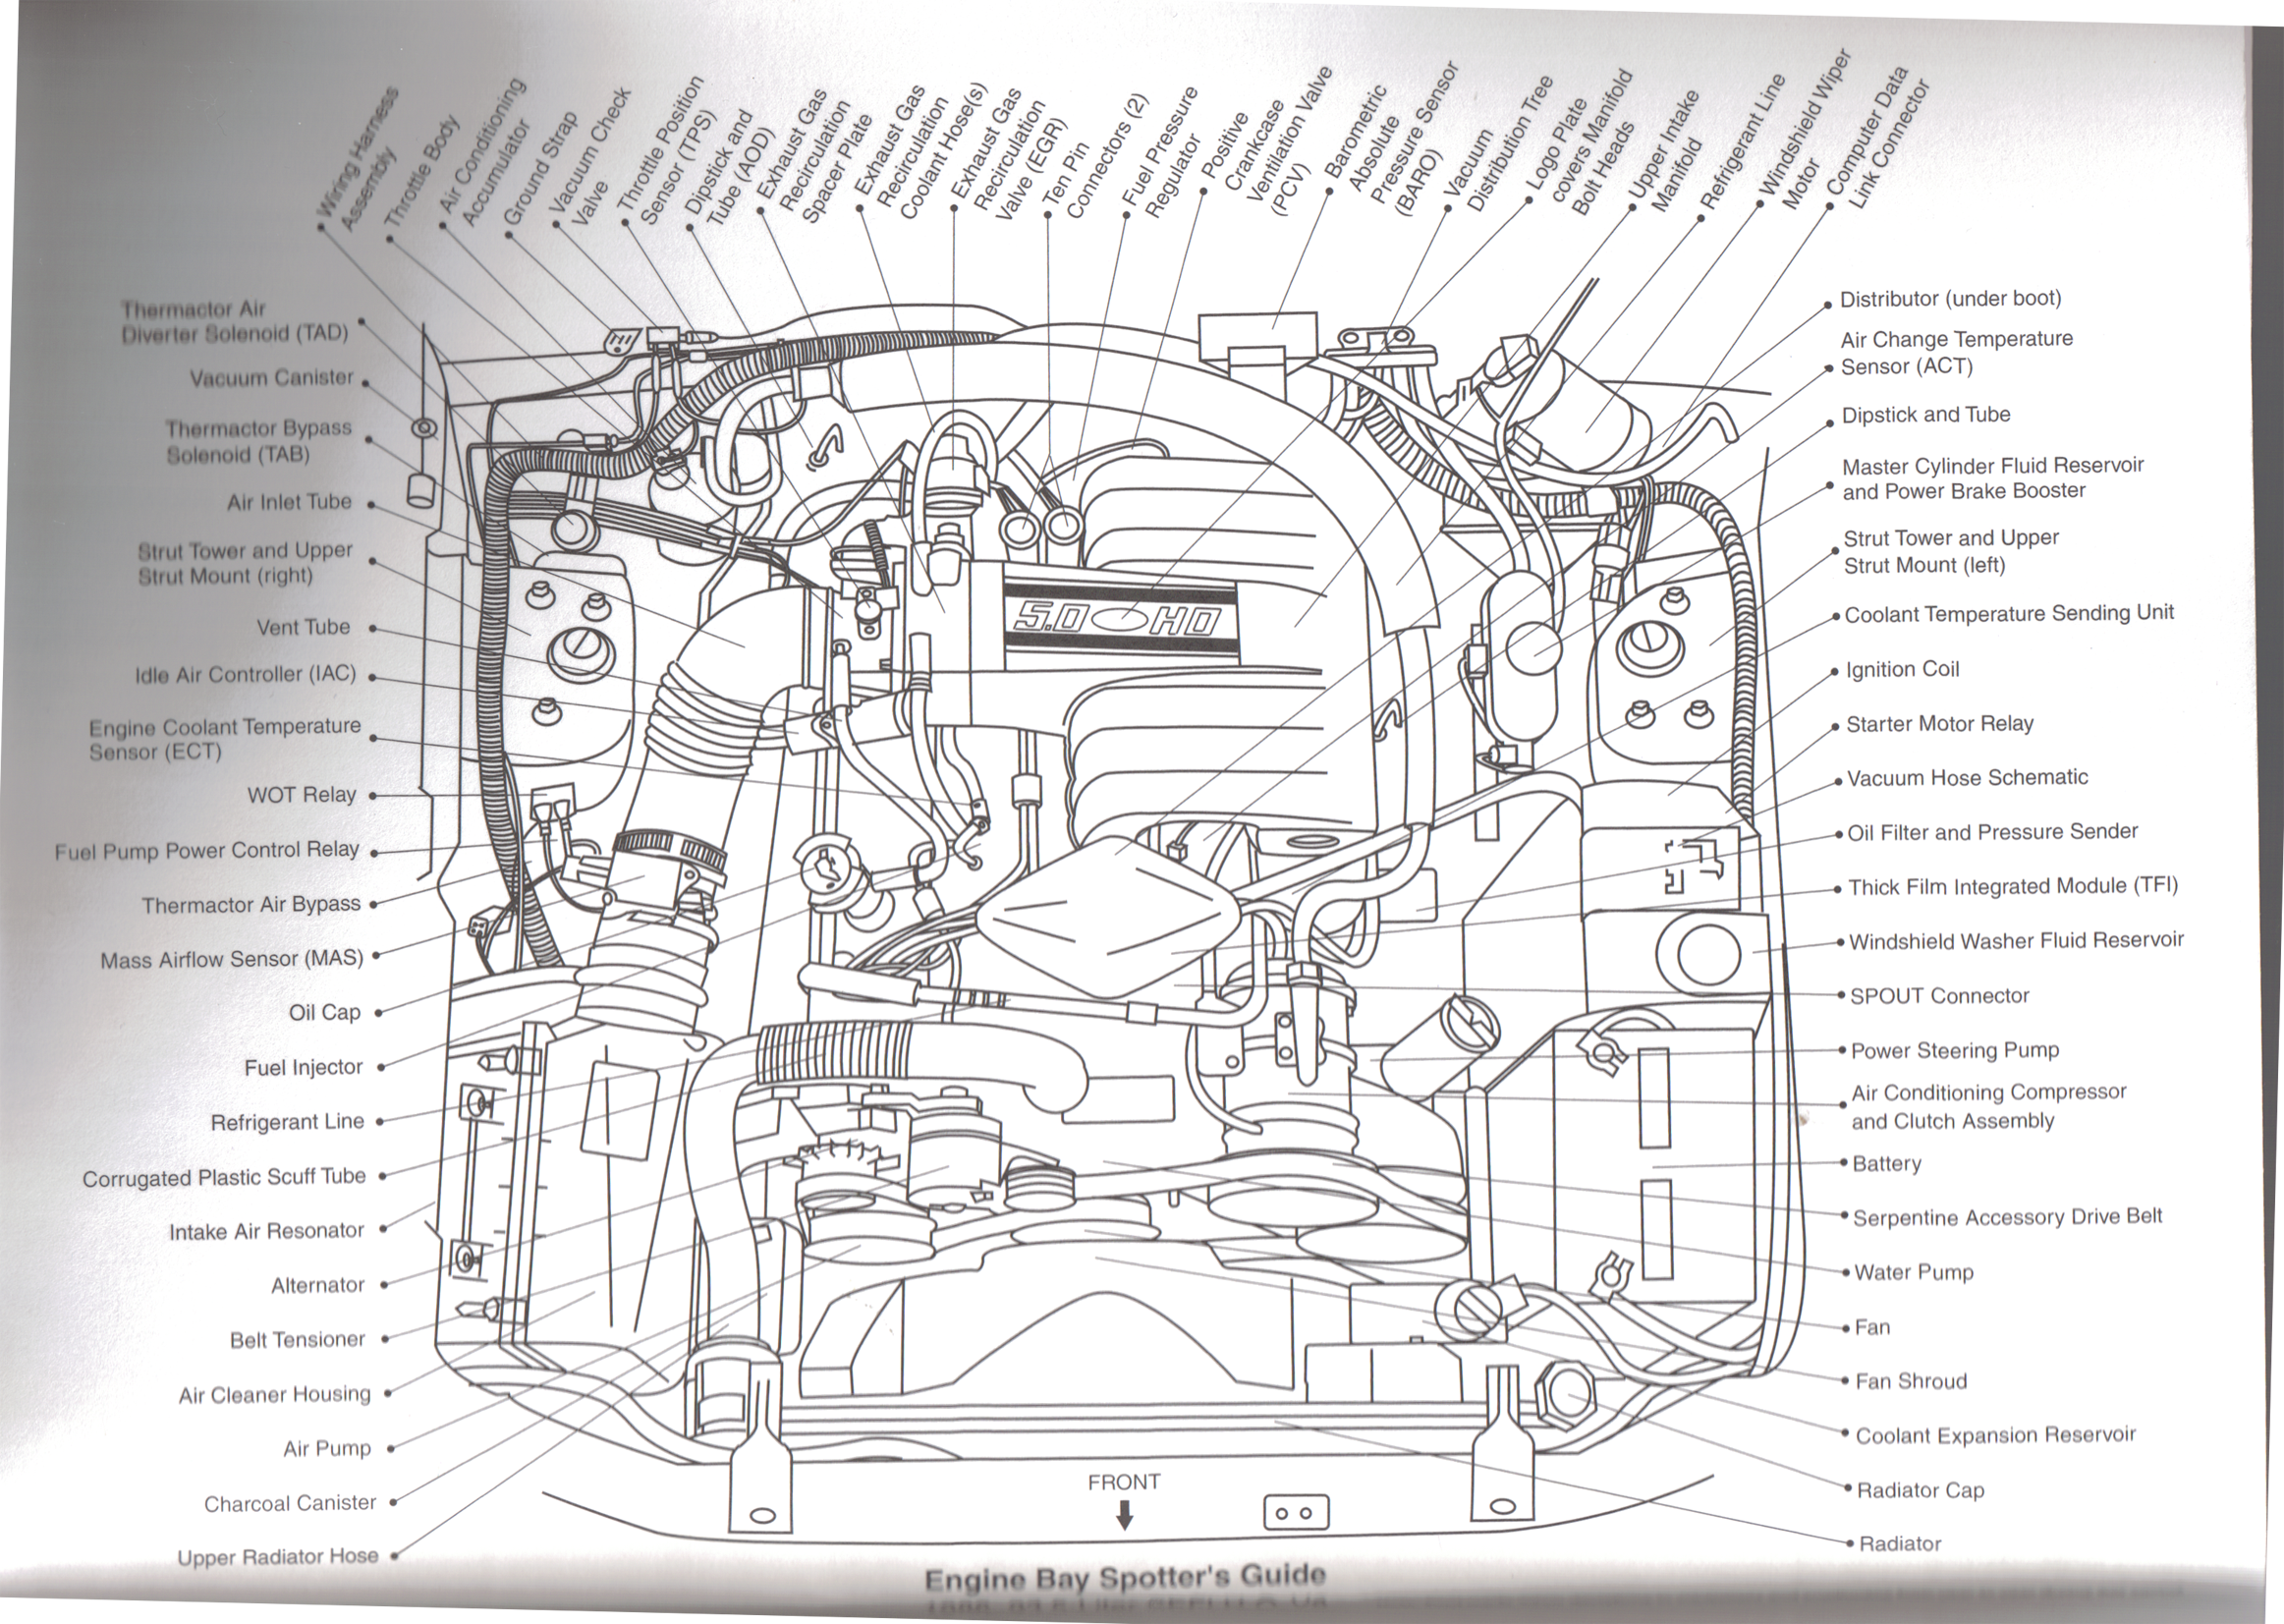 Ford 5.0 Efi Wiring Diagram from lib.americanmuscle.com